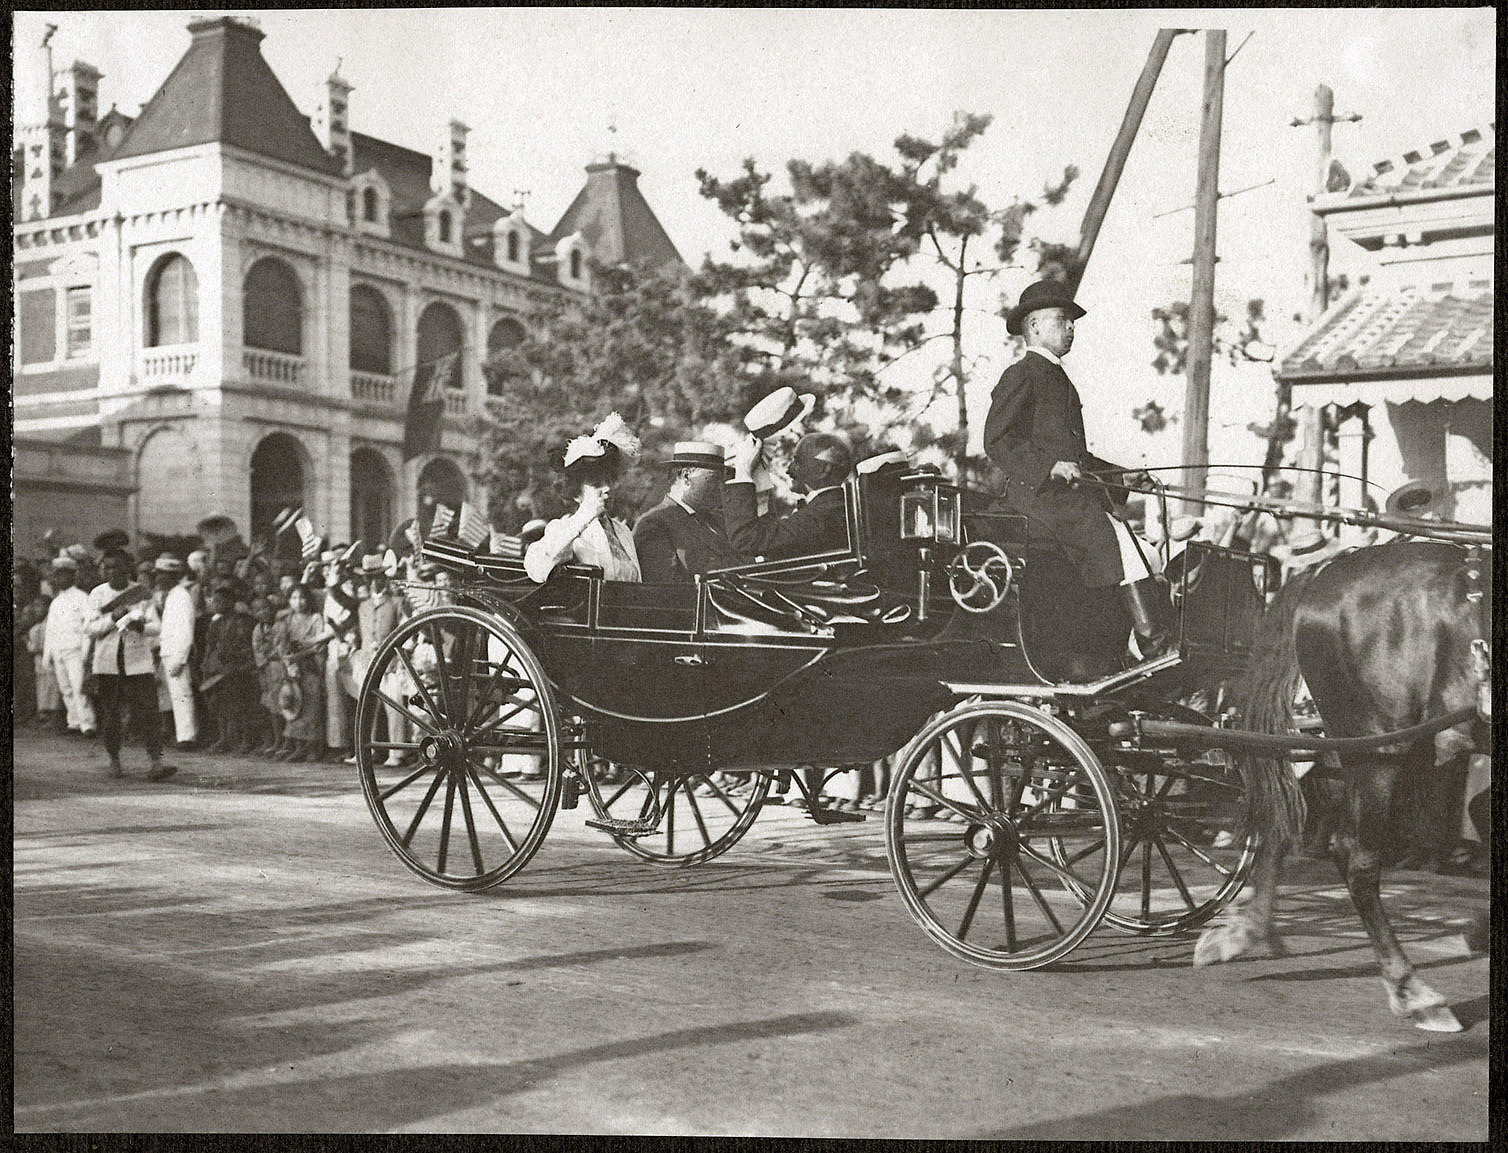 Kobe: William H. Taft and Alice Roosevelt passing cheering crowds on the Bund